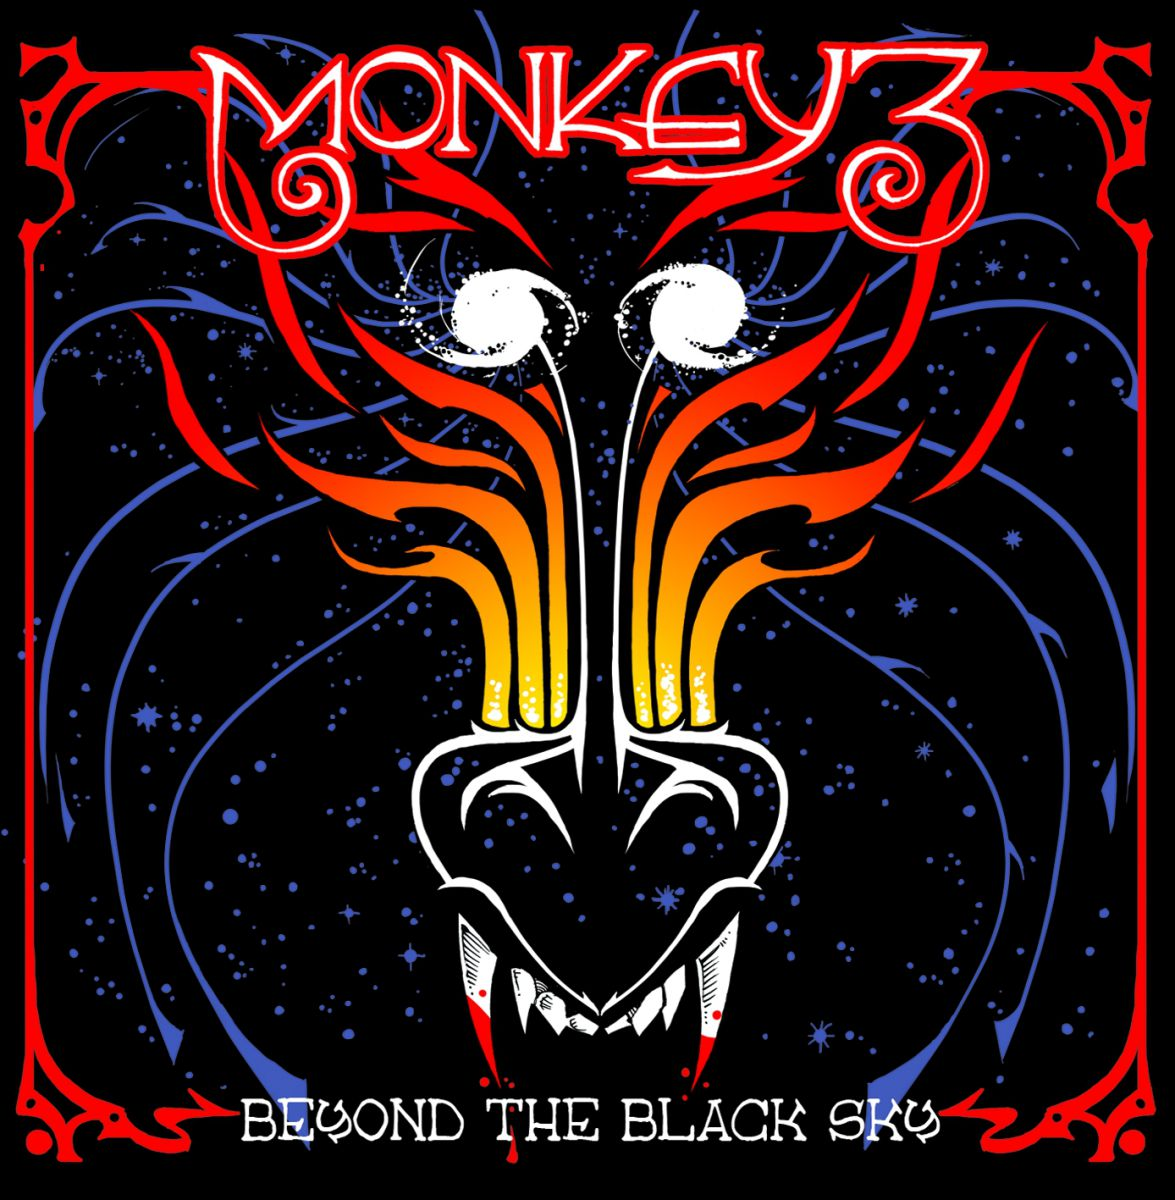 monkey3-2011-beyond-the-black-sky.jpg